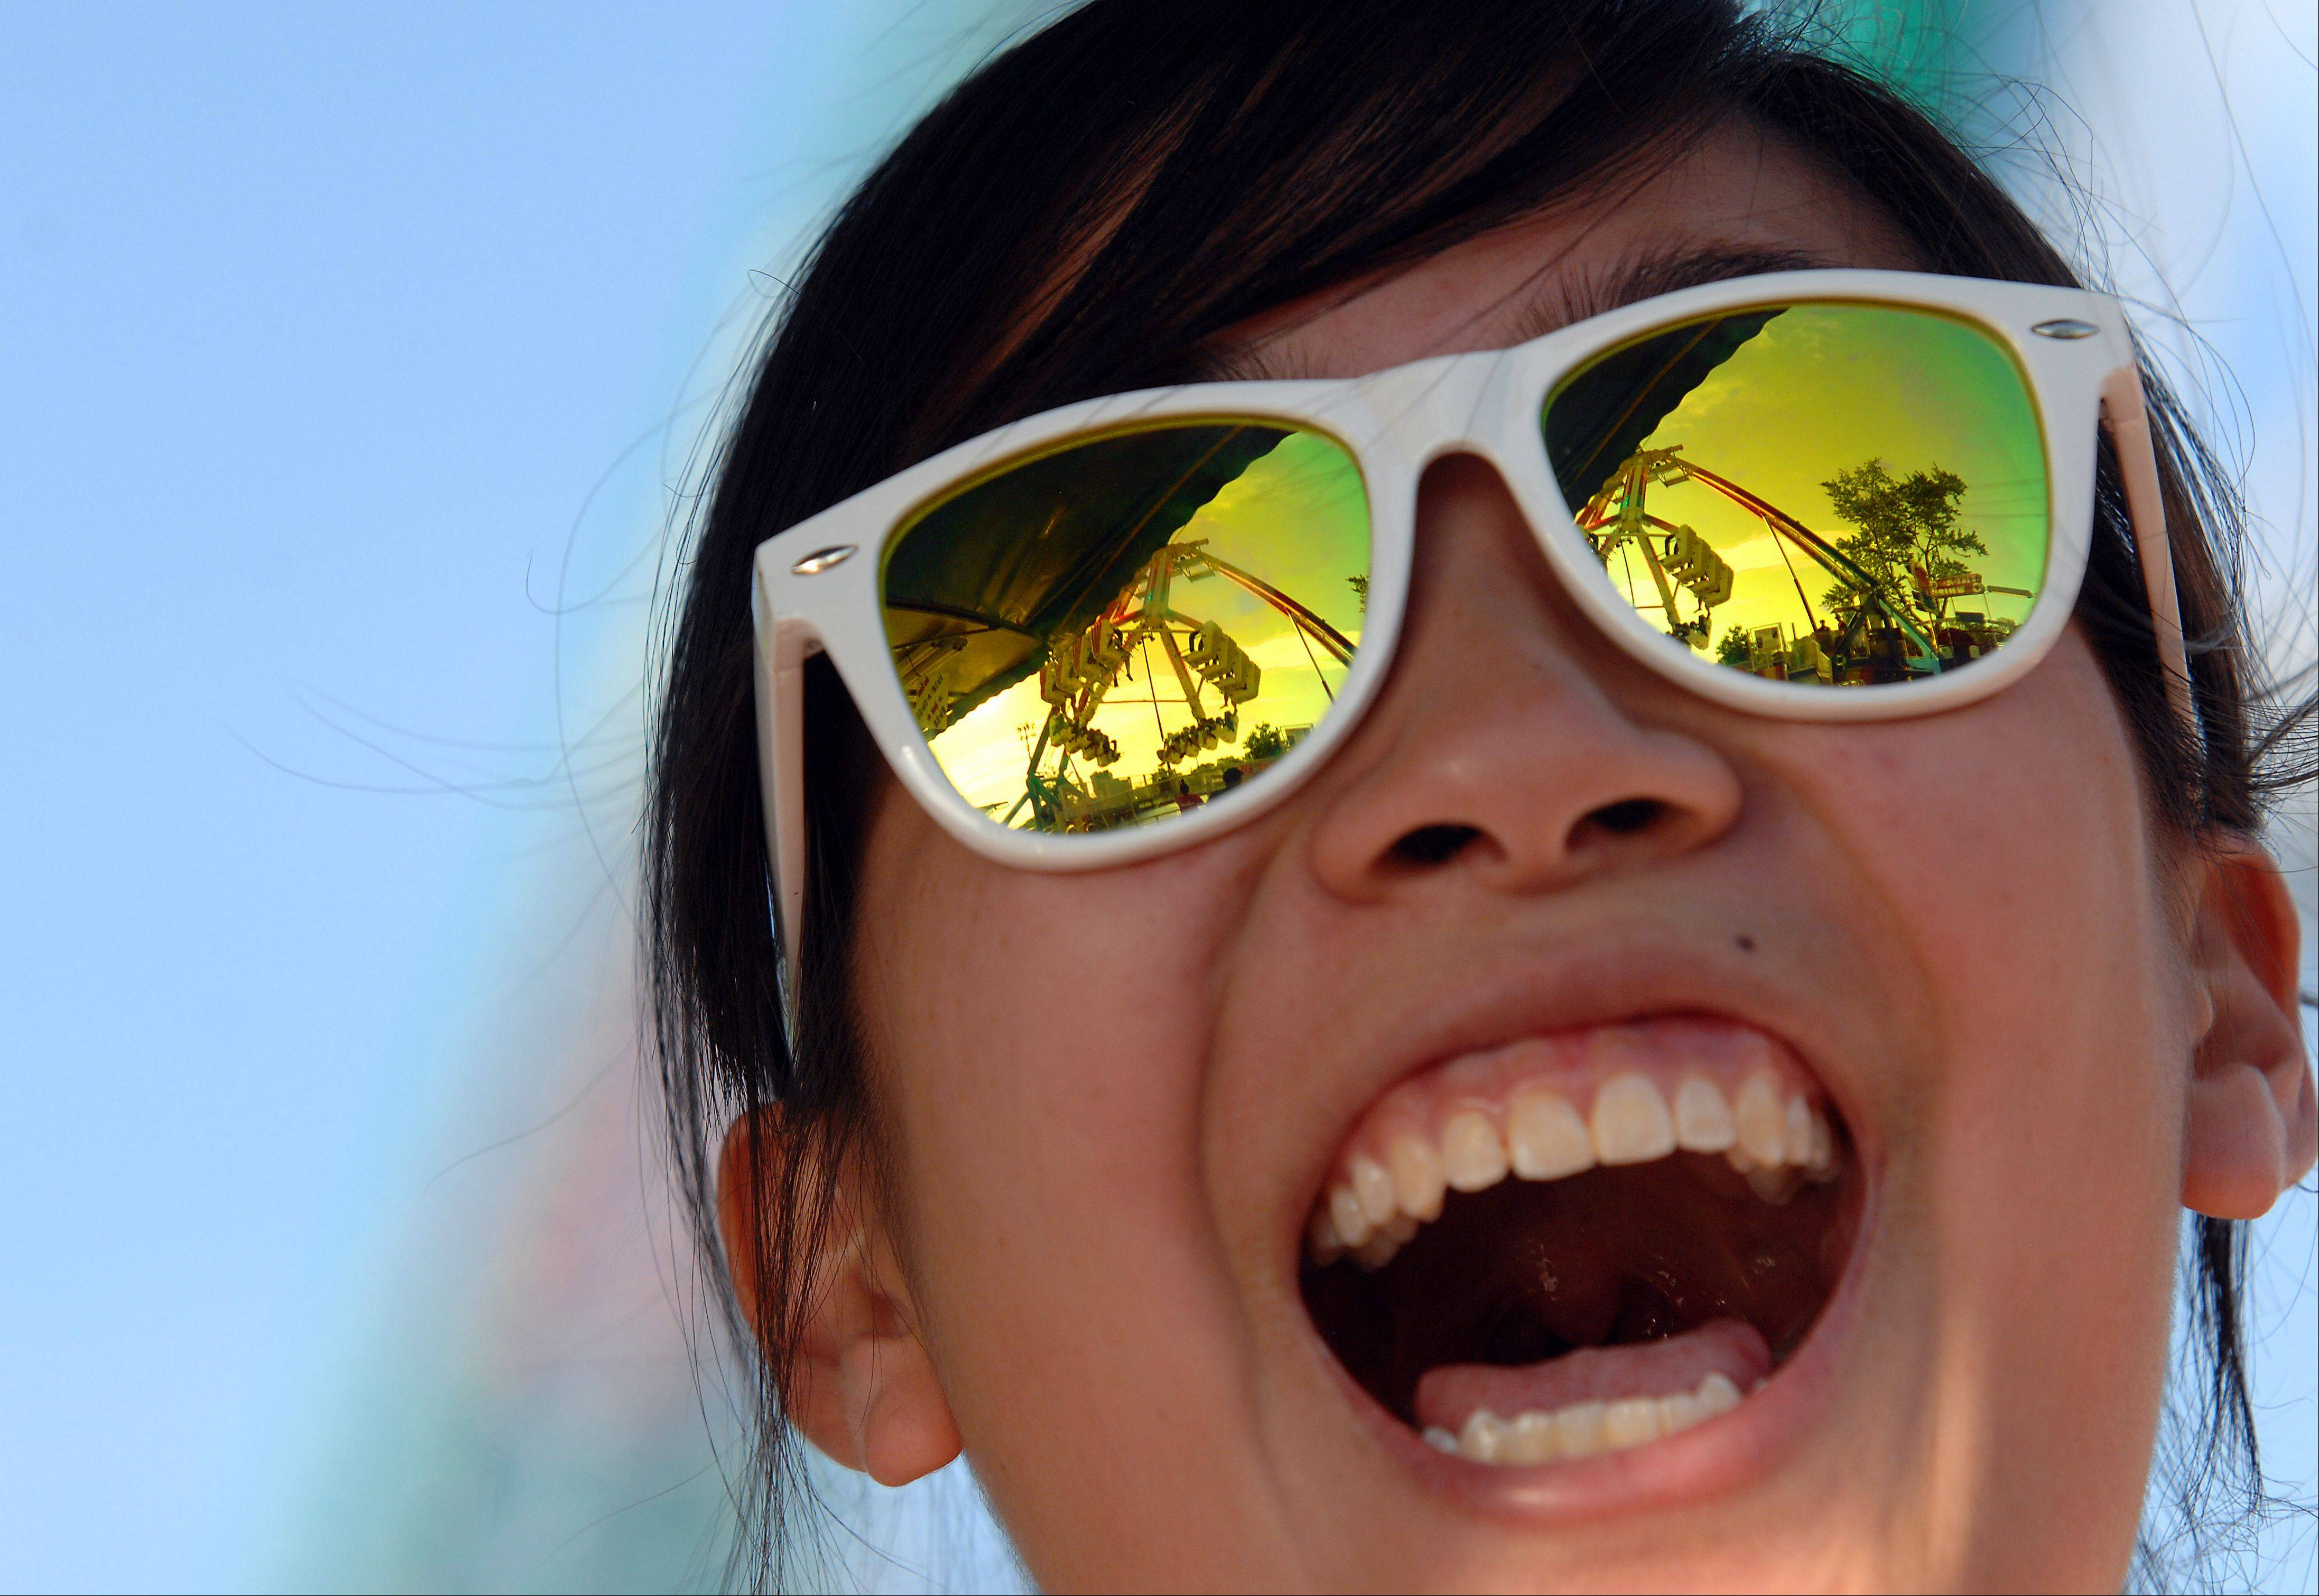 Liz Chan, 19, of Des Plaines screams with delight as she watches her boyfriend ride the Freak Out at Elk Grove's Rotaryfest on Friday.